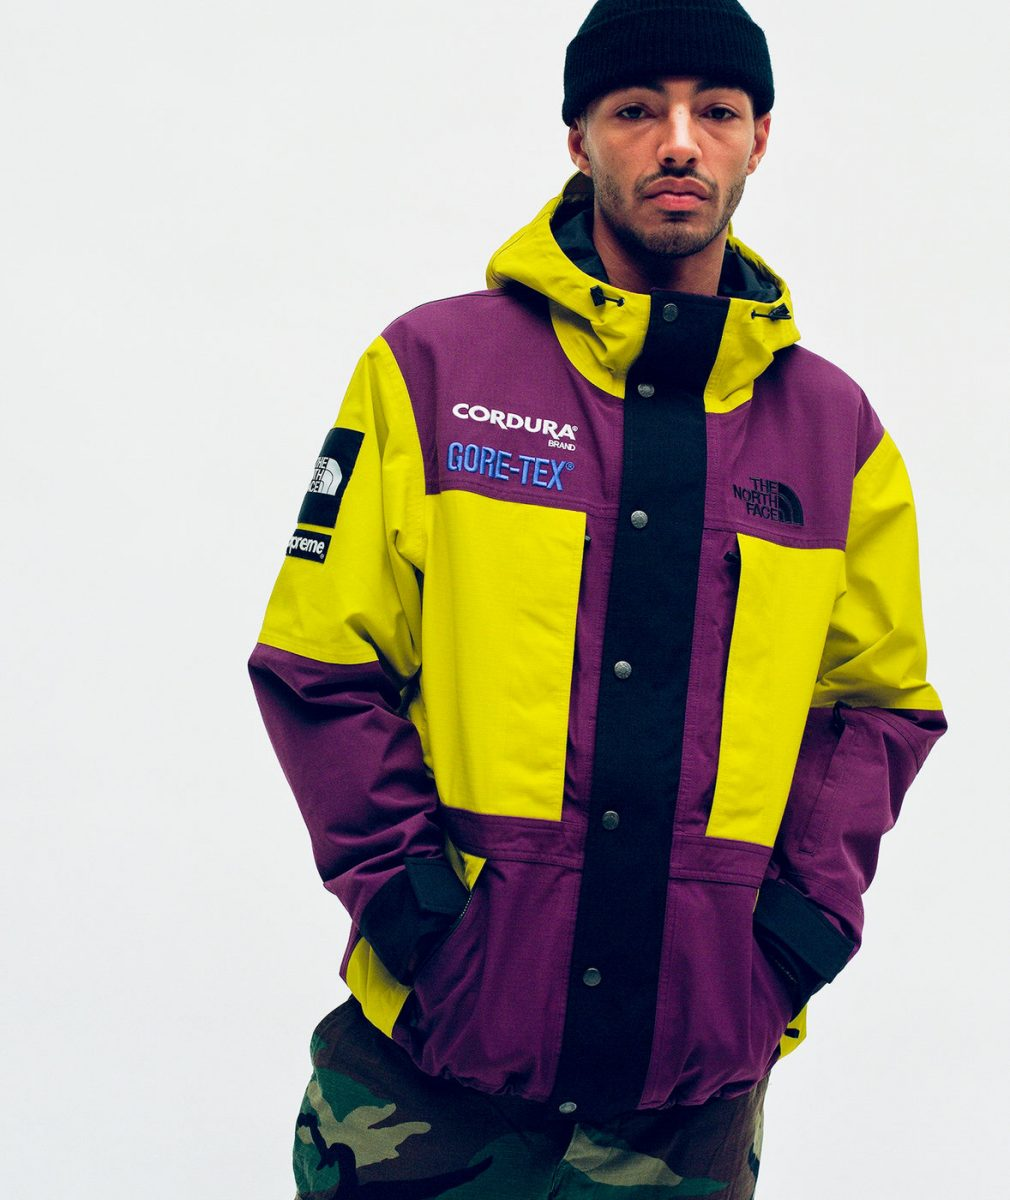 supreme the north face outono inverno 2018 02 - Supreme x The North Face Outono/Inverno 2018